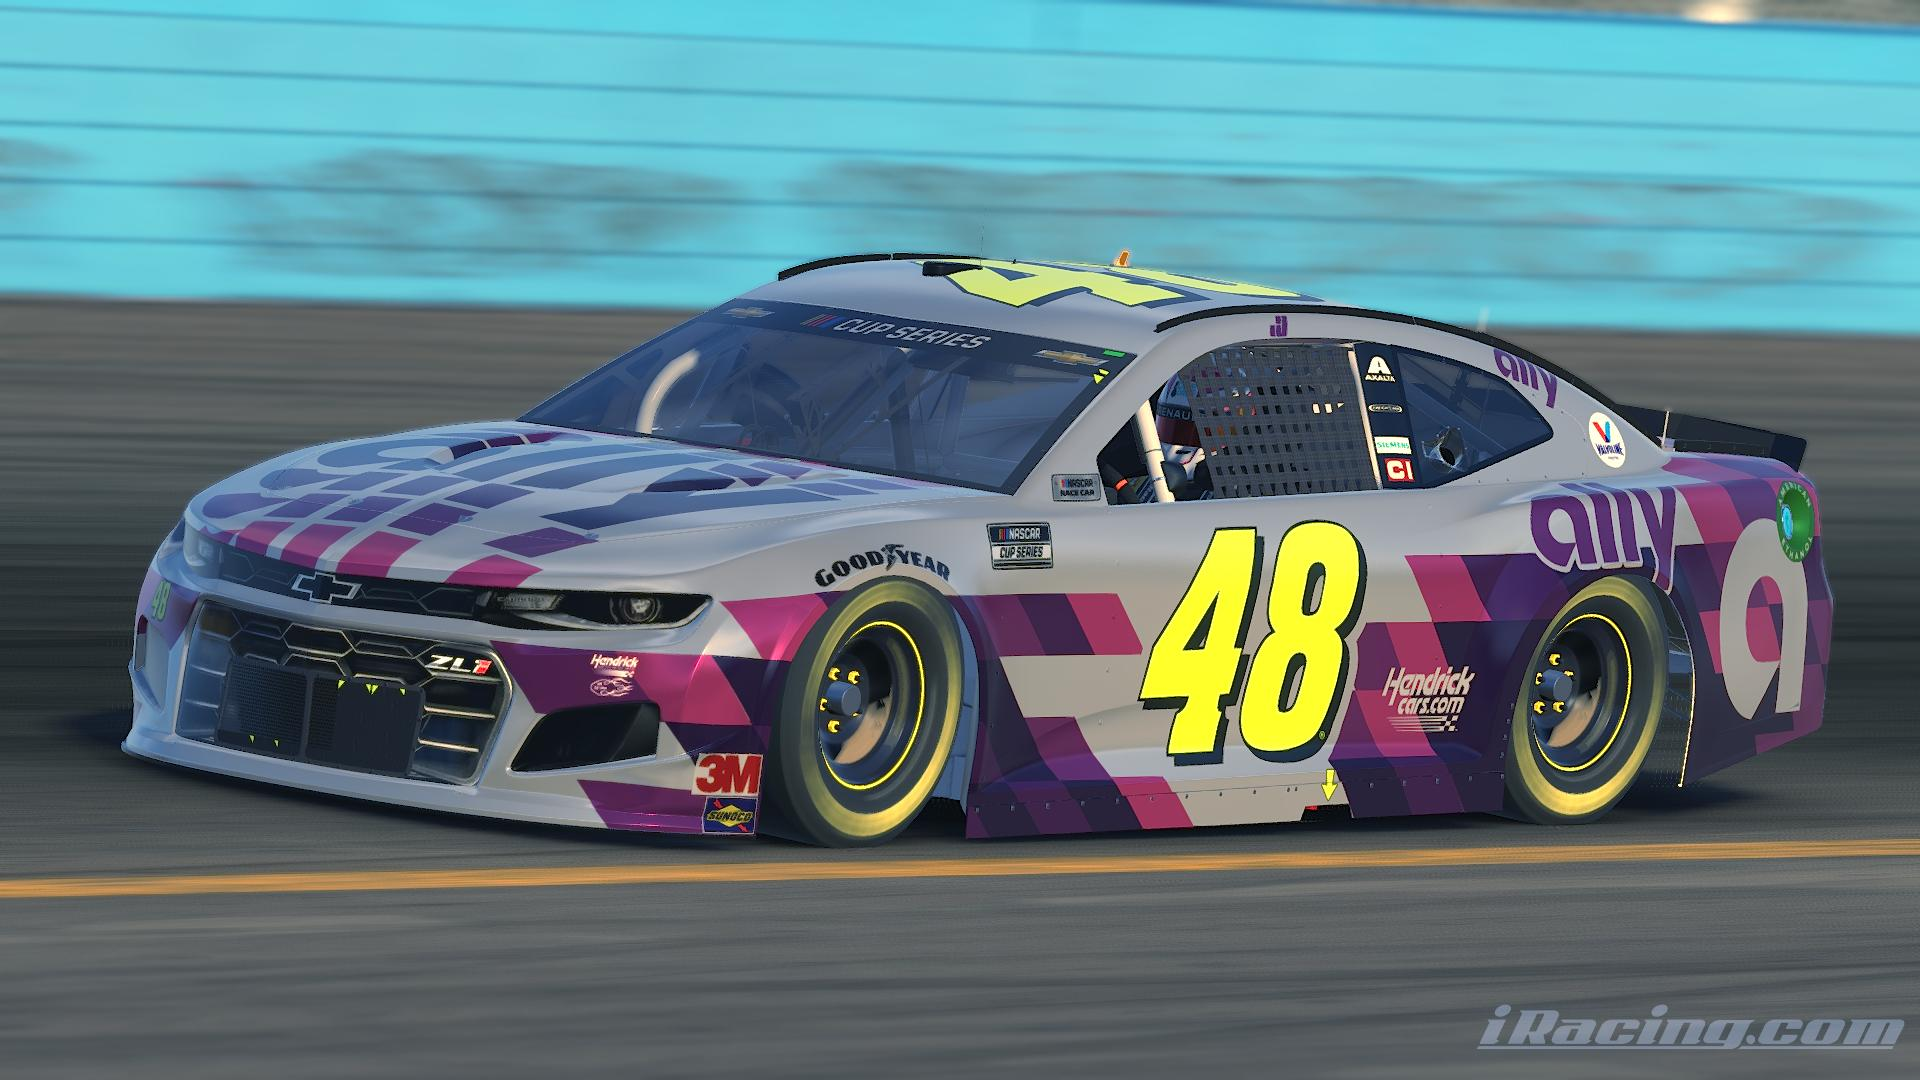 Preview of Jimmie Johnson Last Ride 2020 by Alexander L Russell